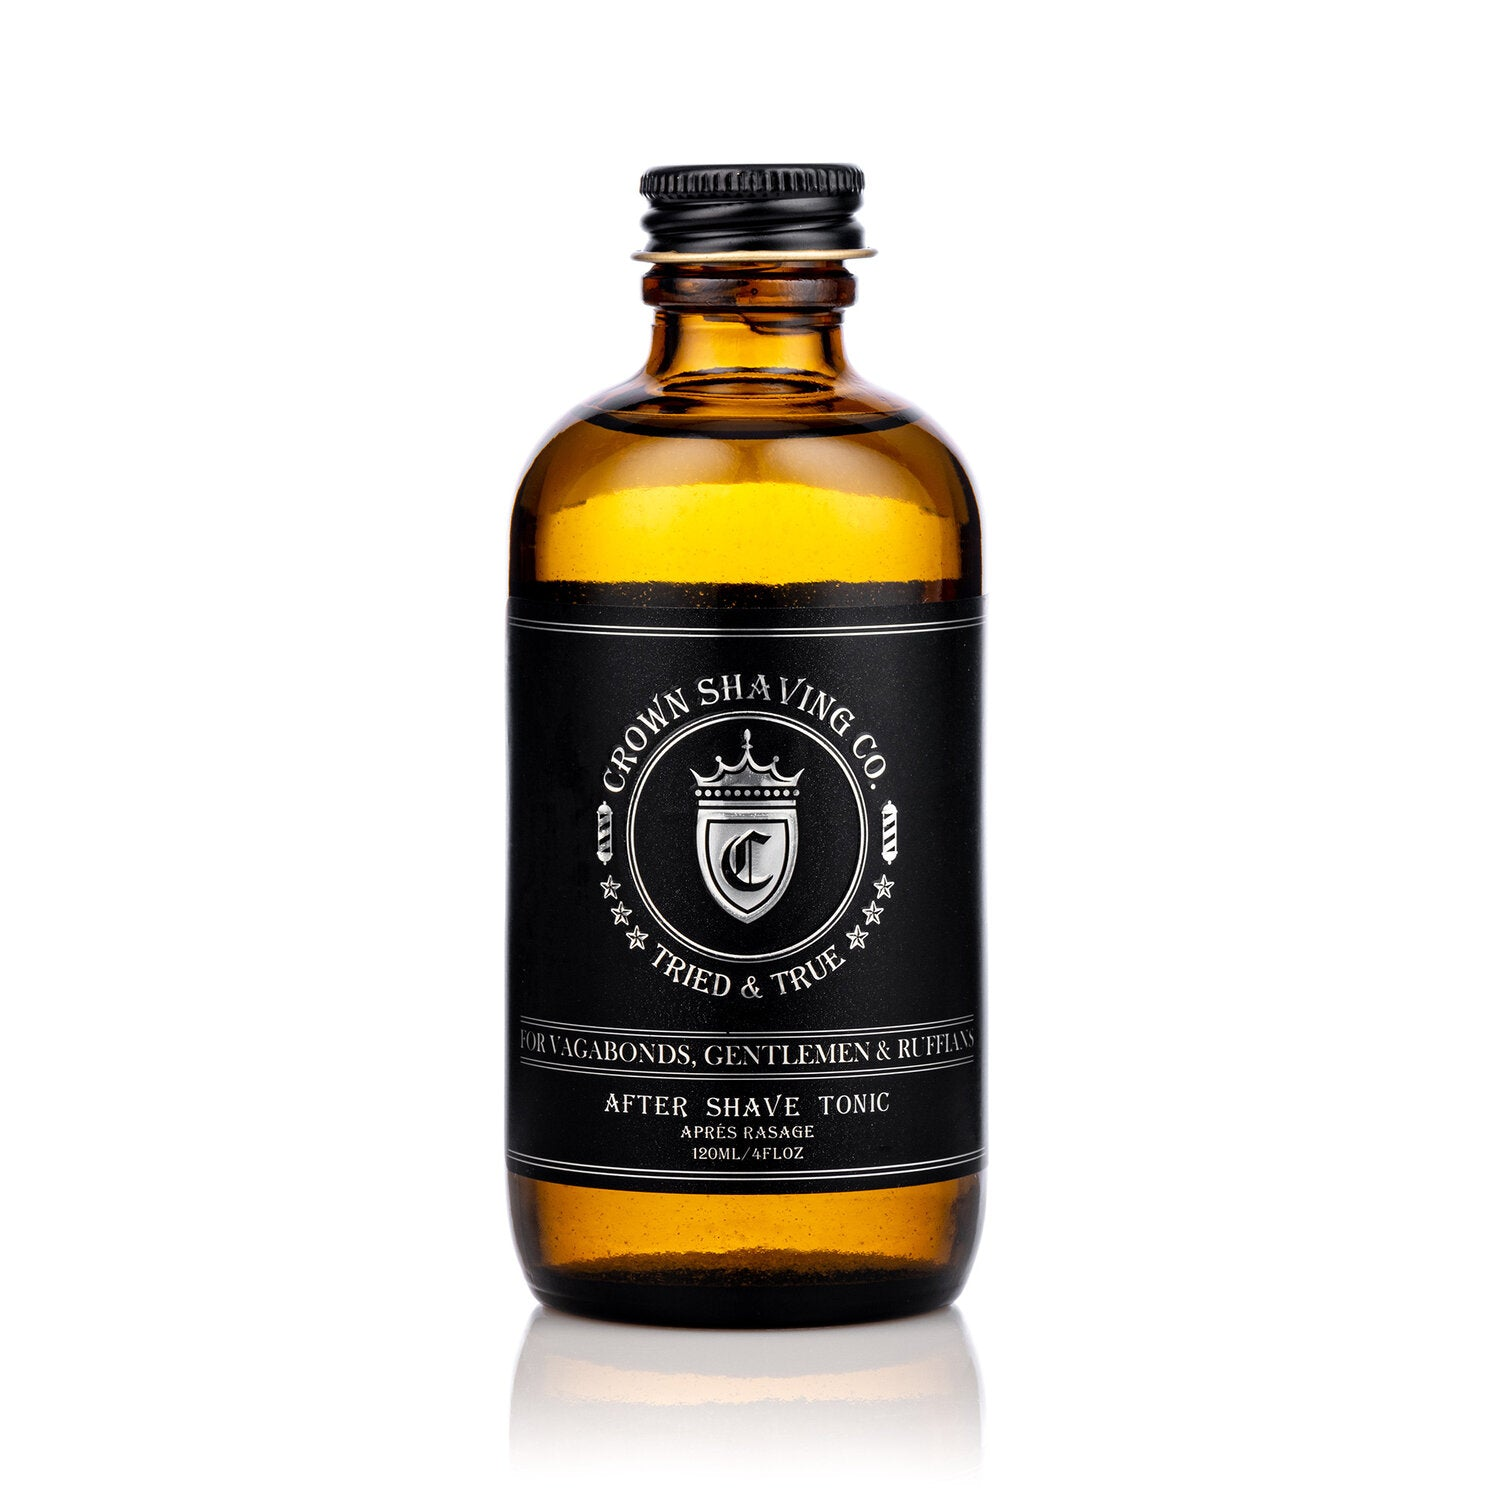 CROWN SHAVING CO AFTER SHAVE TONIC